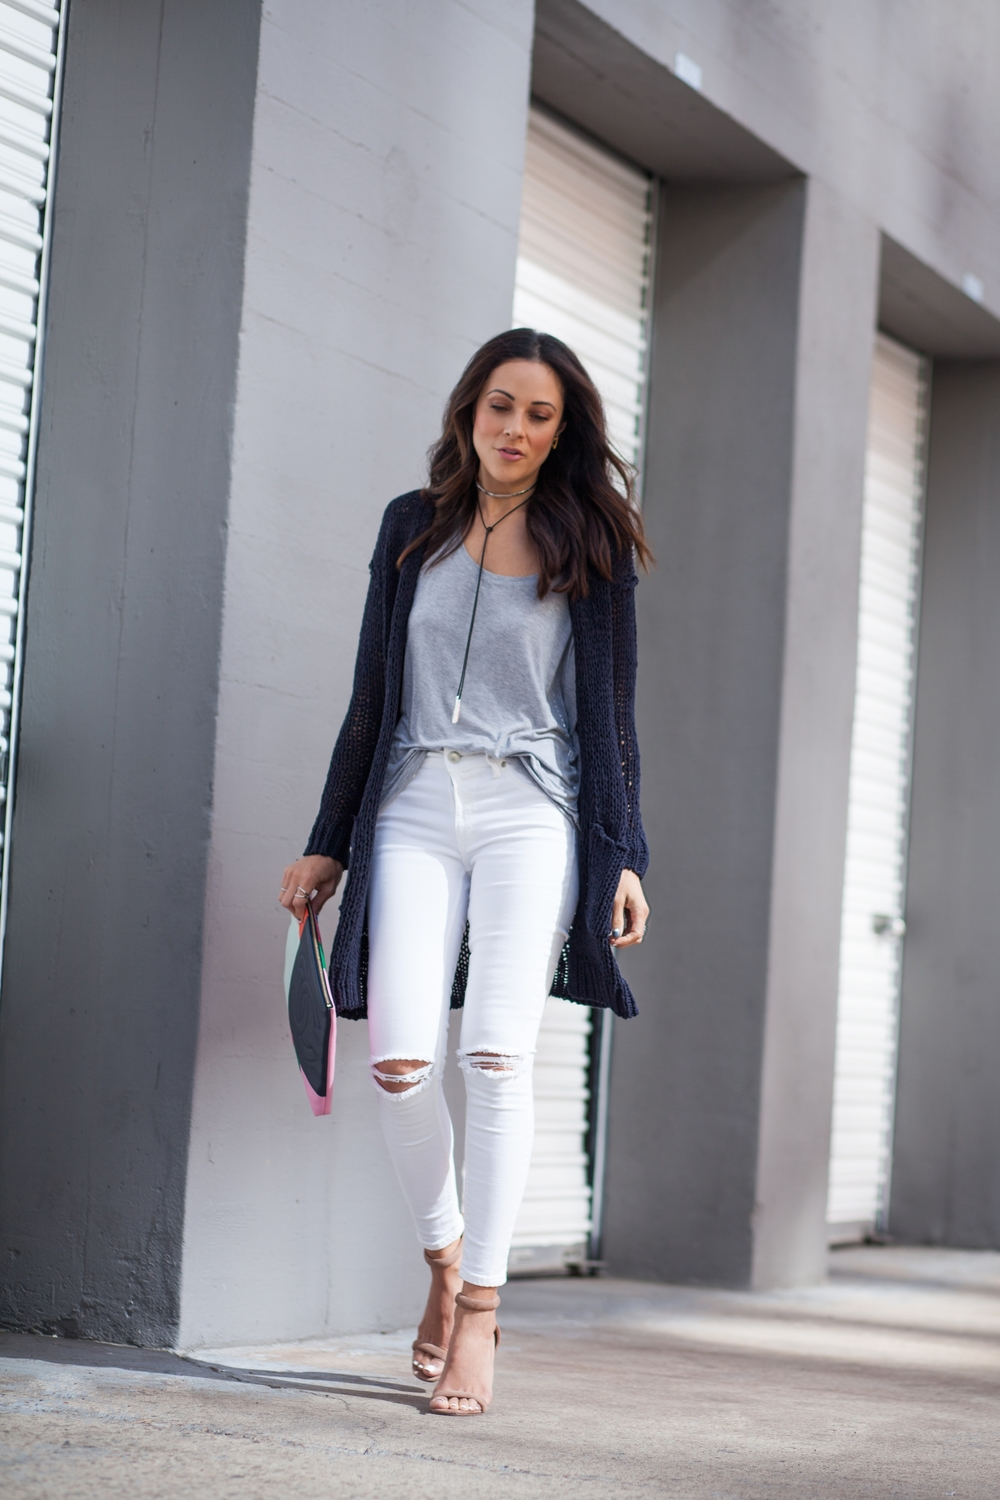 LucysWhims_FashionBlogger_RES Denim_Chanel_FreePeople_NecessaryClothing_LillaPNYC_SanDiego_Streetstyle.jpg